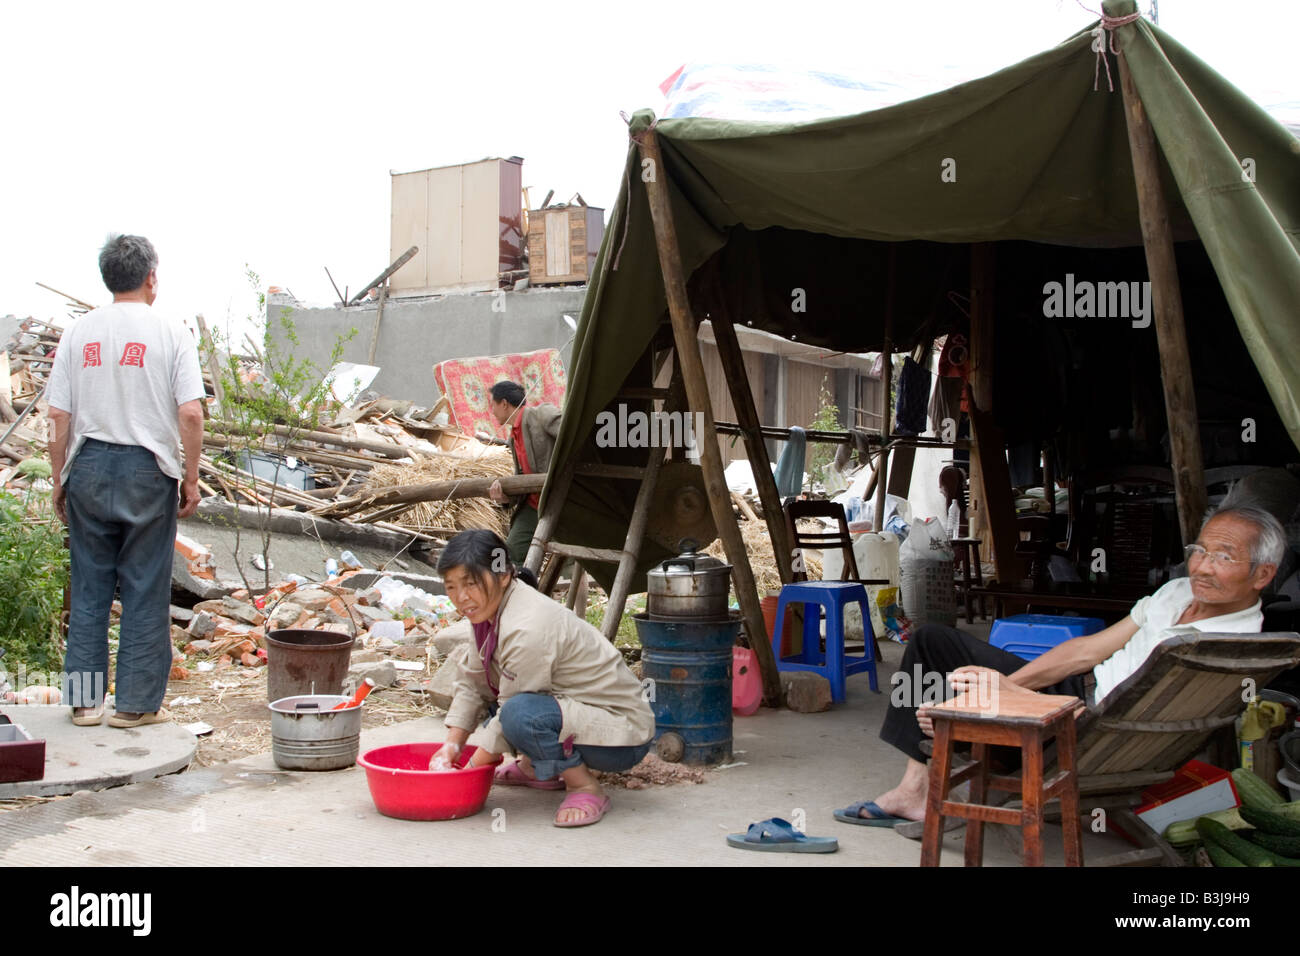 Family in makeshift tent outside their home destroyed by the earthquake of 12 May 2008 in Sichuan, China - Stock Image